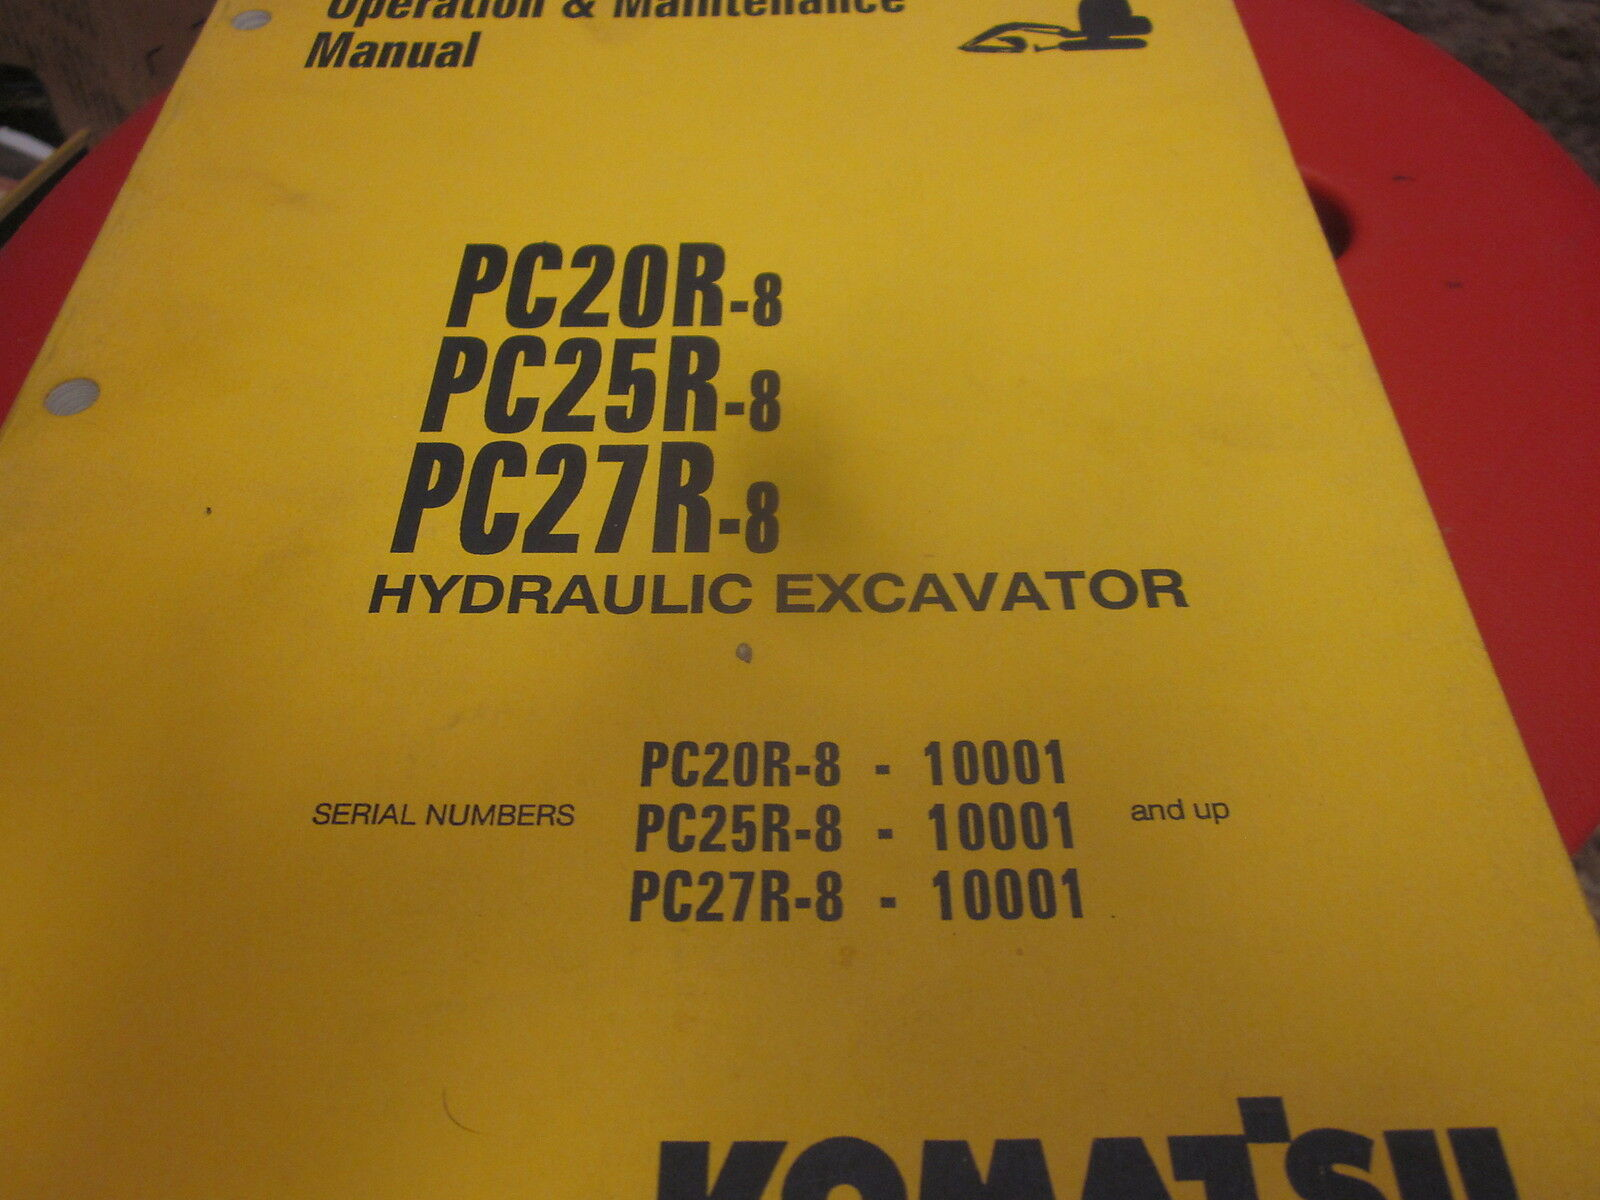 Komatsu PC20R-8 PC25R-8 PC27R-8 Excavator Operation & Maintenance Manual 1  of 2Only 1 available See More